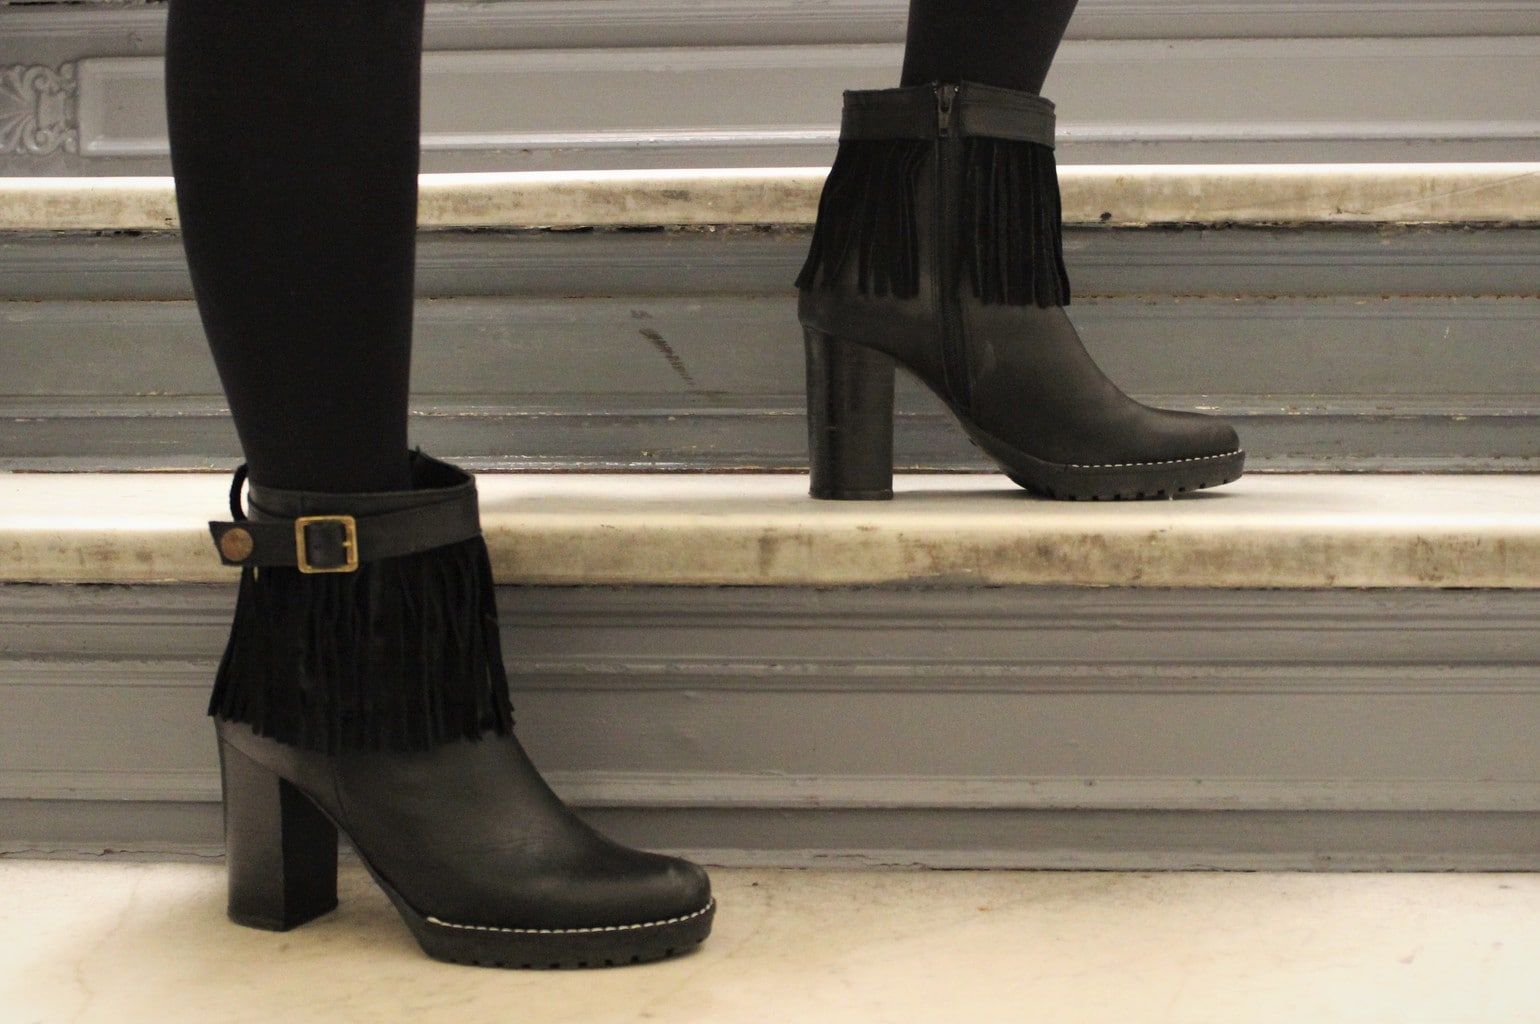 Black fringe heeled booties with gold buckles and chunky platforms.